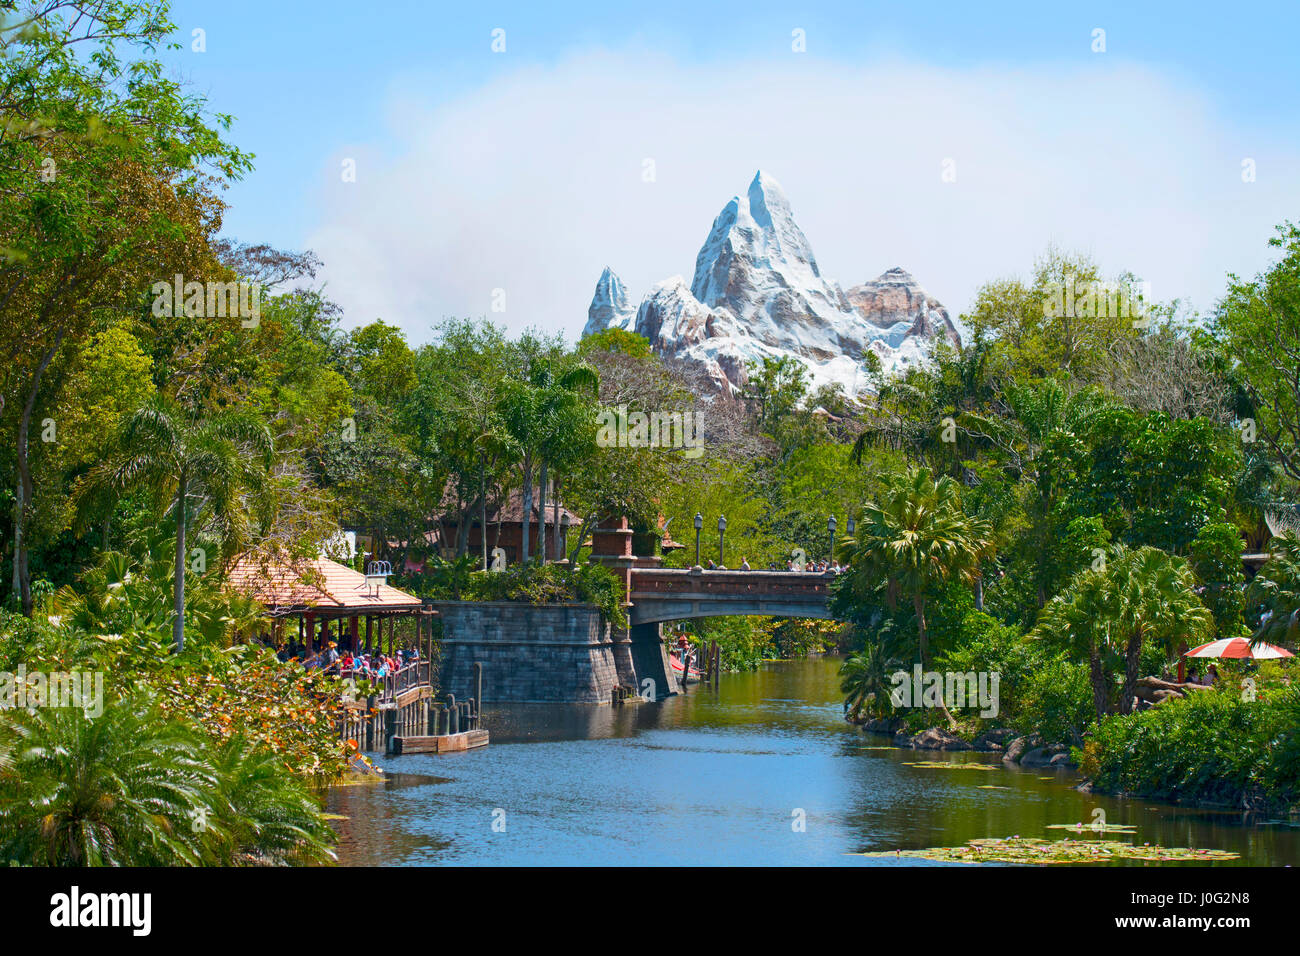 Mount Everest, Animal Kingdom, Asia, Disney World Resort, Orlando Florida - Stock Image